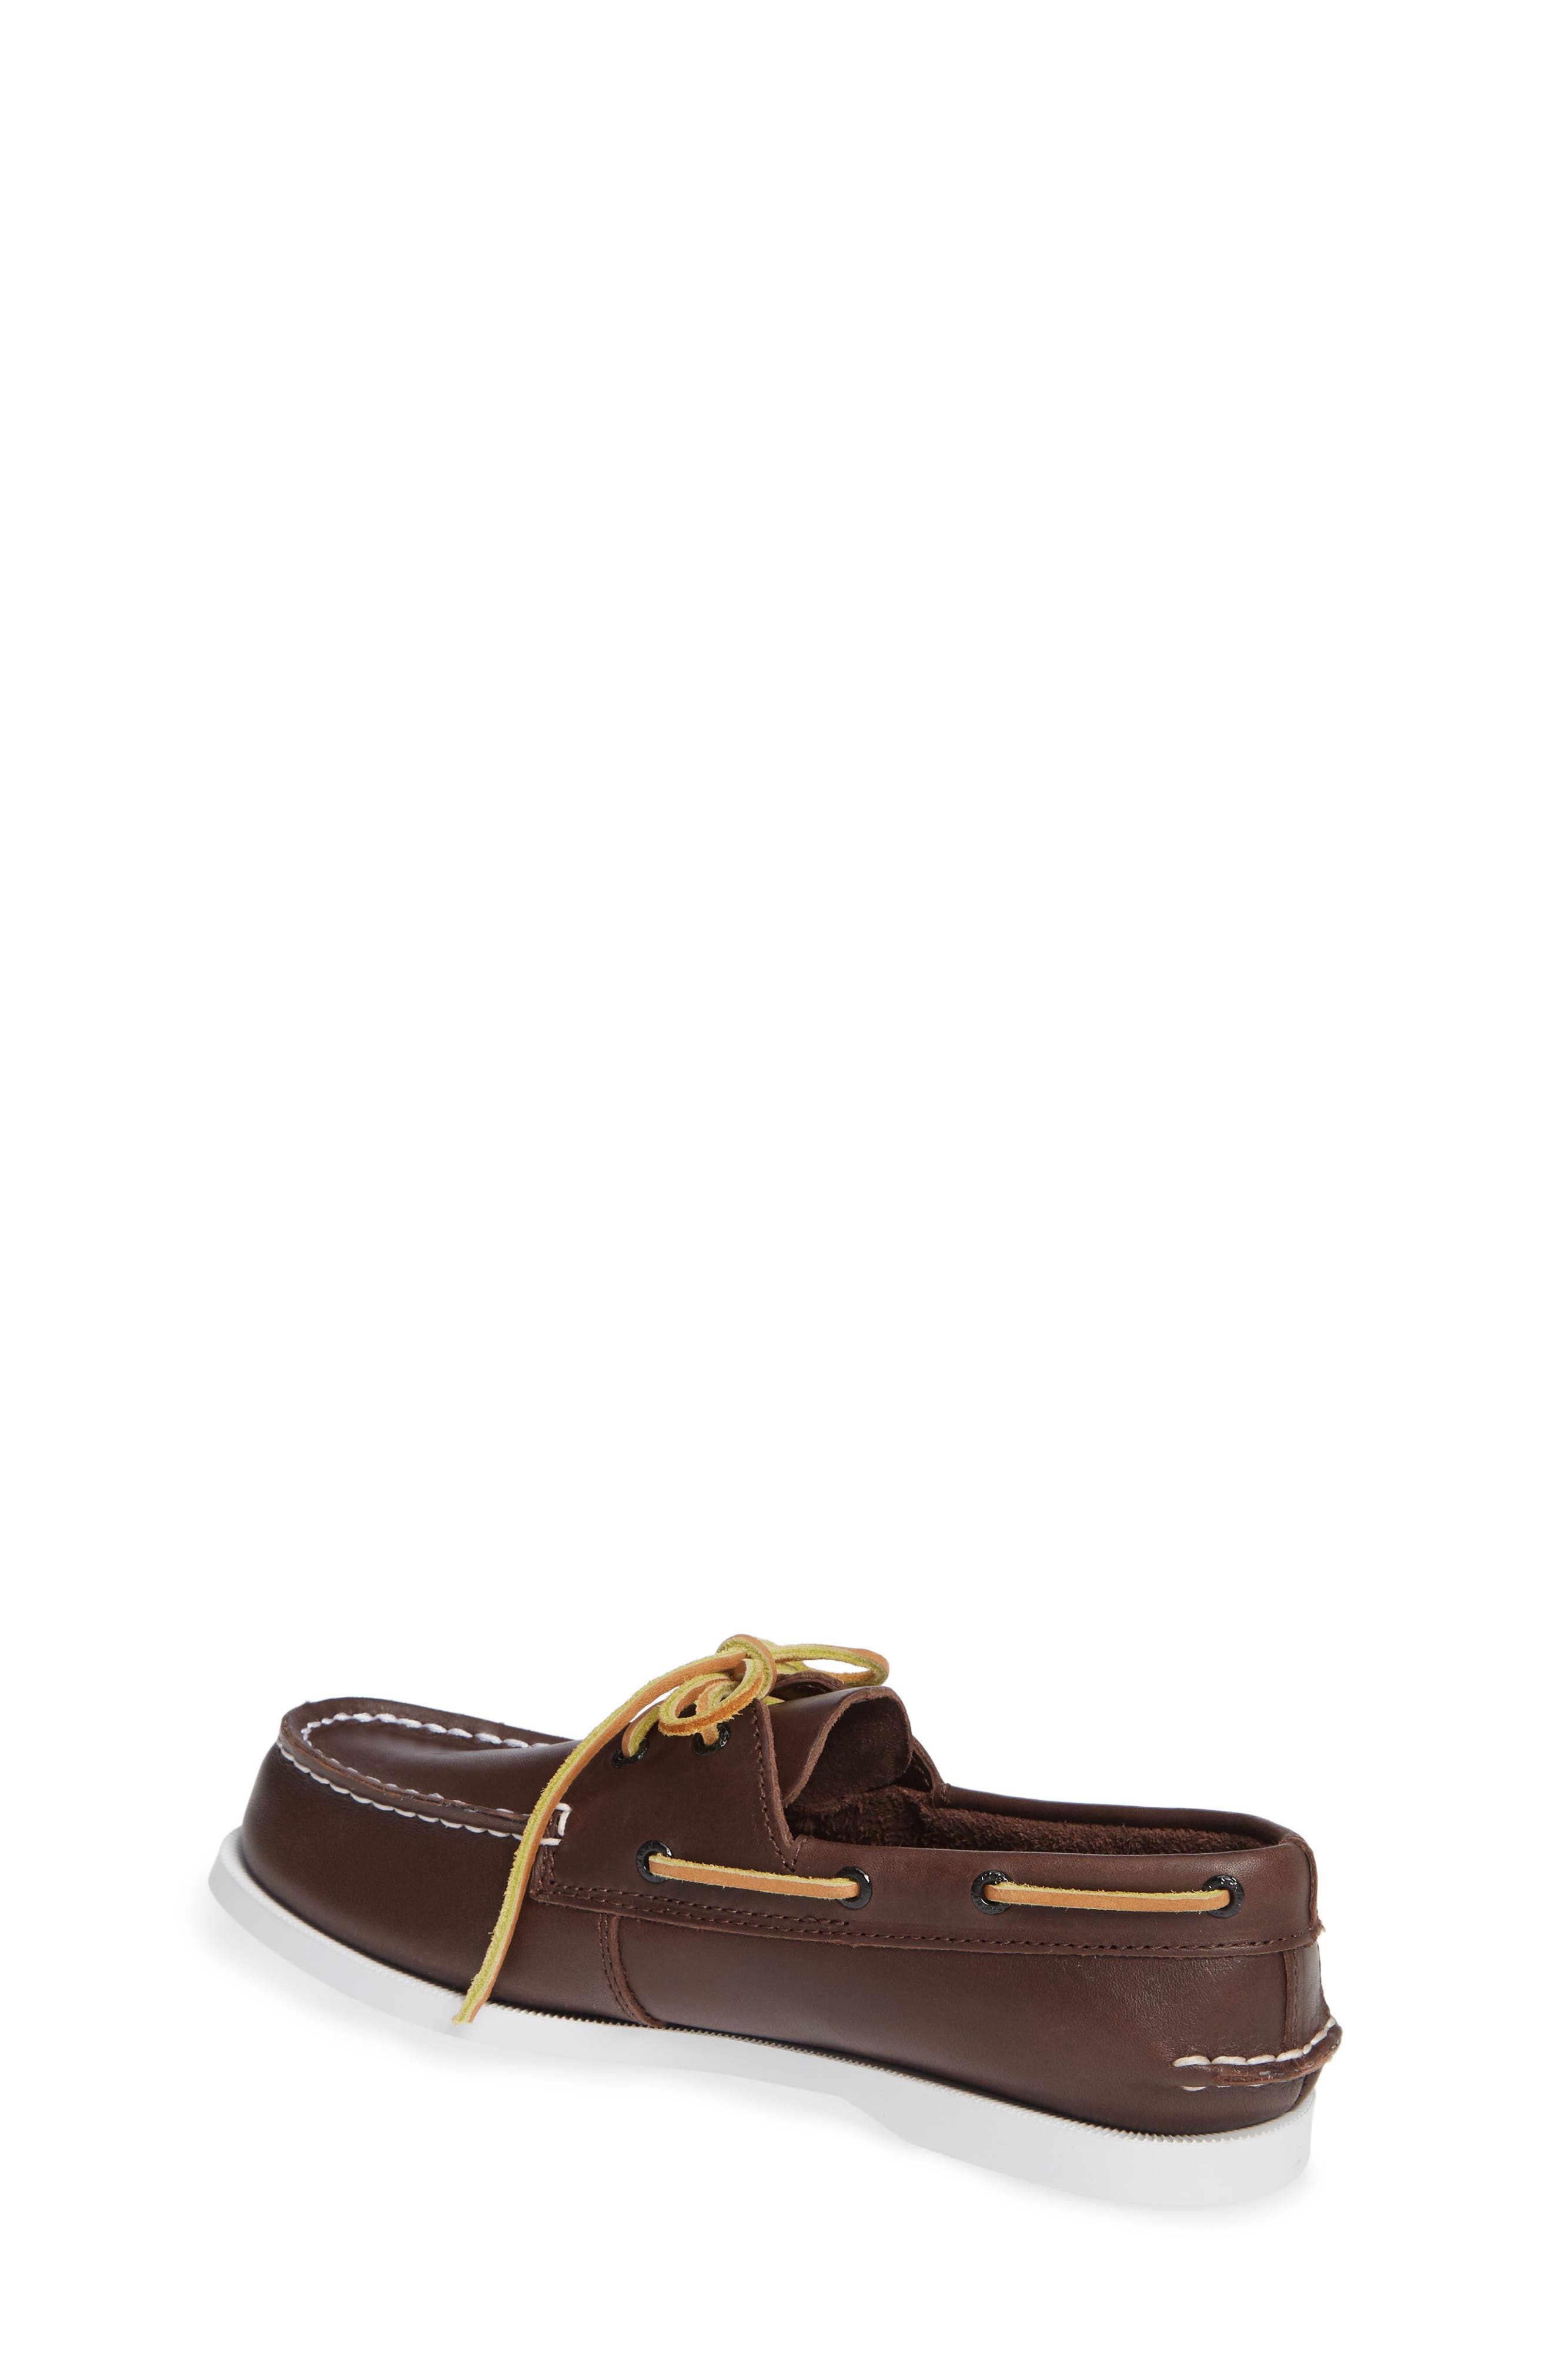 SPERRY KIDS, 'Authentic Original' Boat Shoe, Alternate thumbnail 3, color, BROWN LEATHER